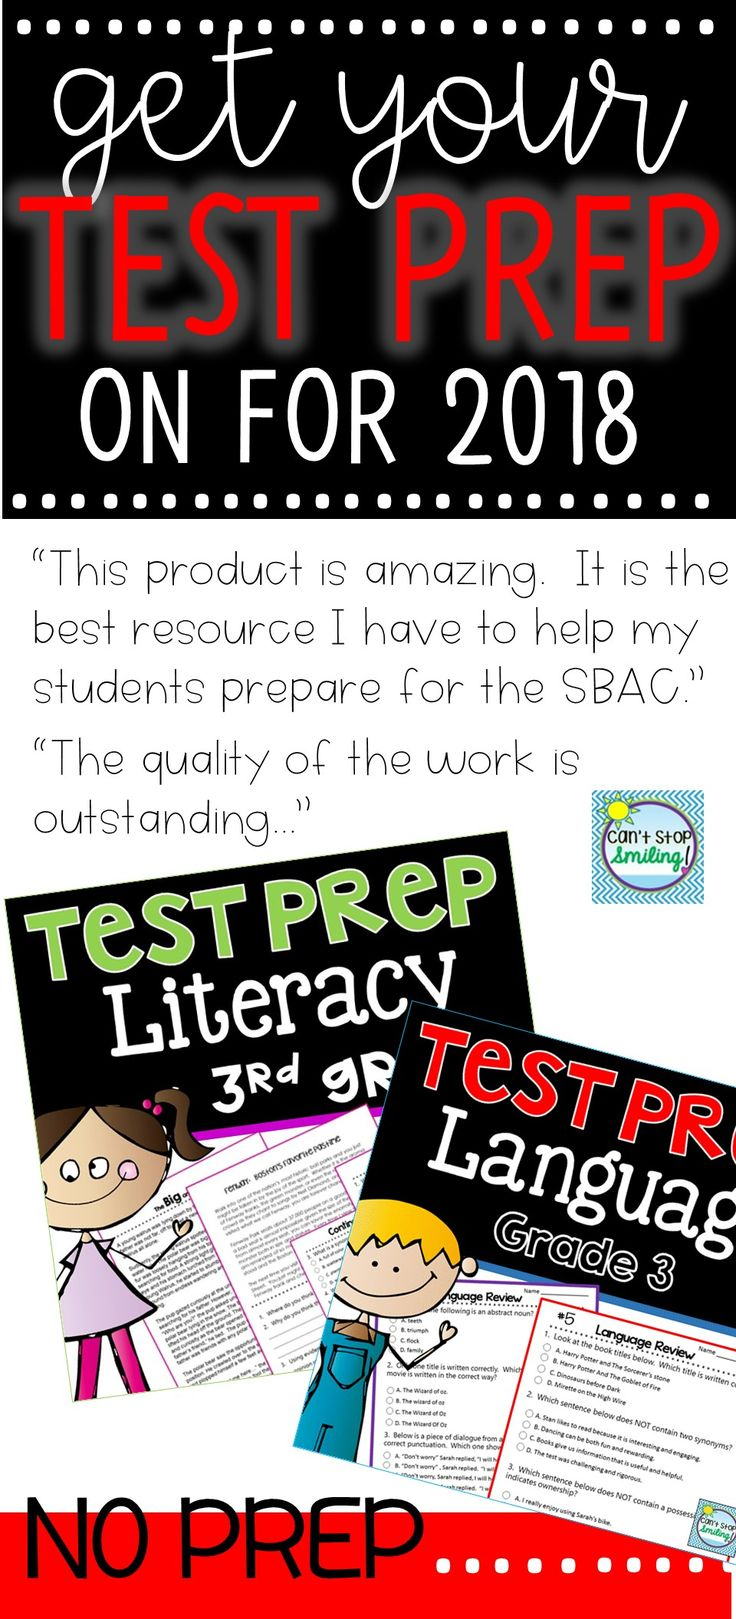 "3rd Grade Test Prep resource focused on Literacy with rigor... ""PERFECT...I'm obsessed with how great this was..."""